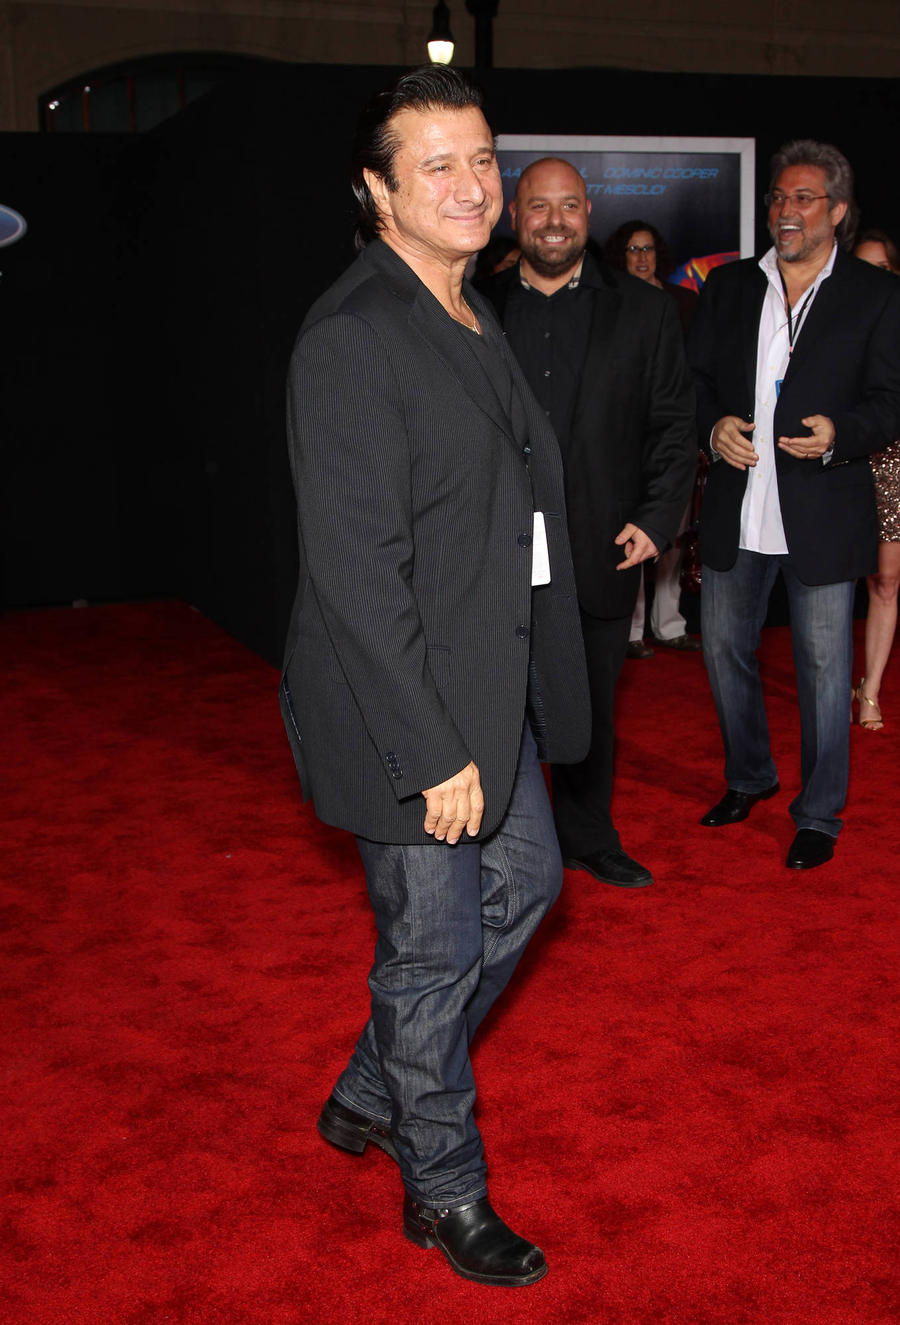 Steve Perry Will Rejoin Journey For Hall Of Fame Induction